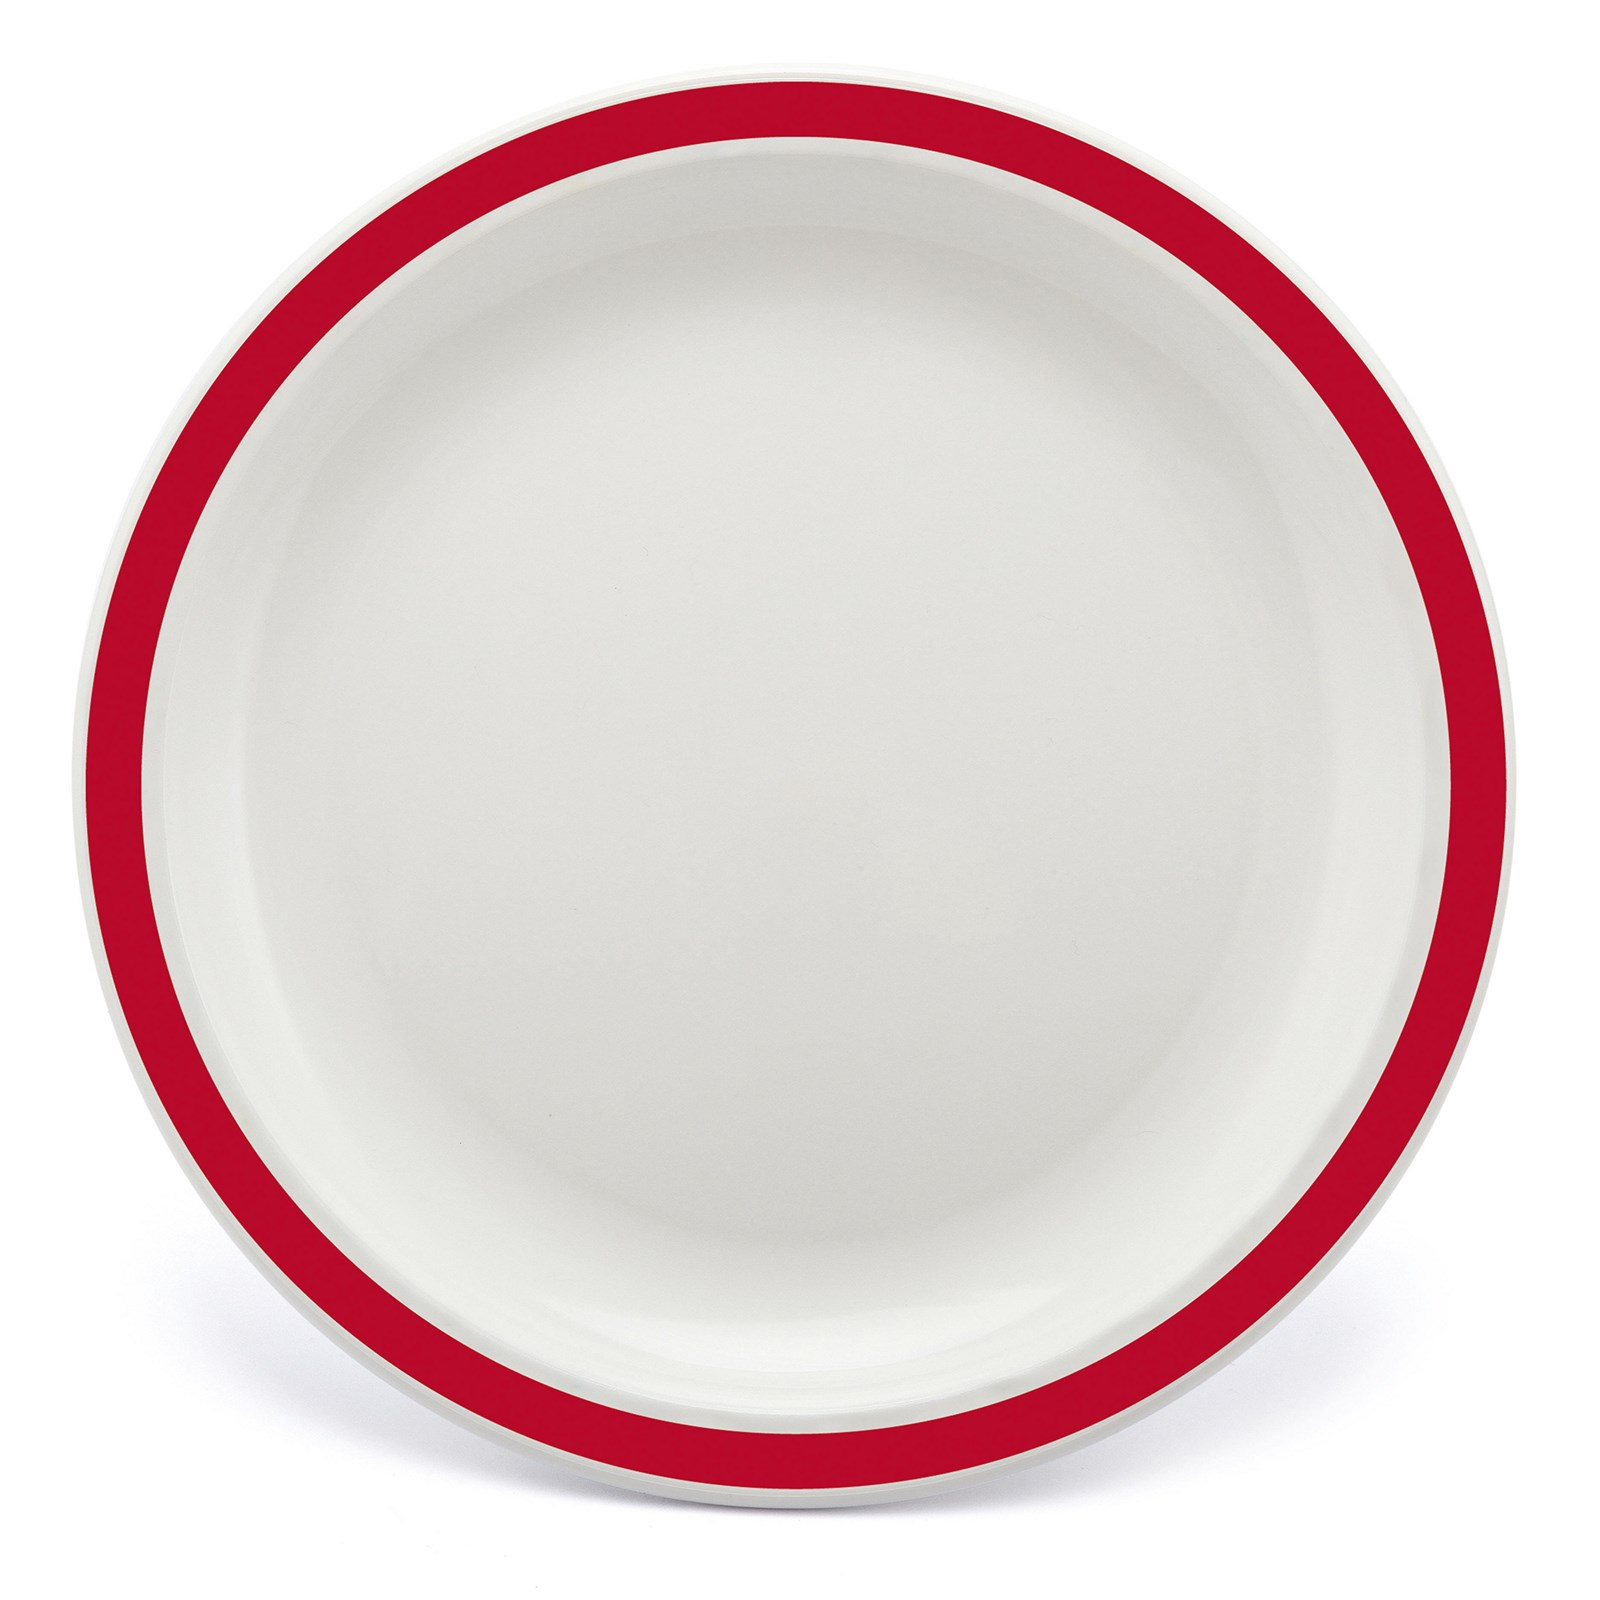 Narrow Rimmed Plates 170mm Red